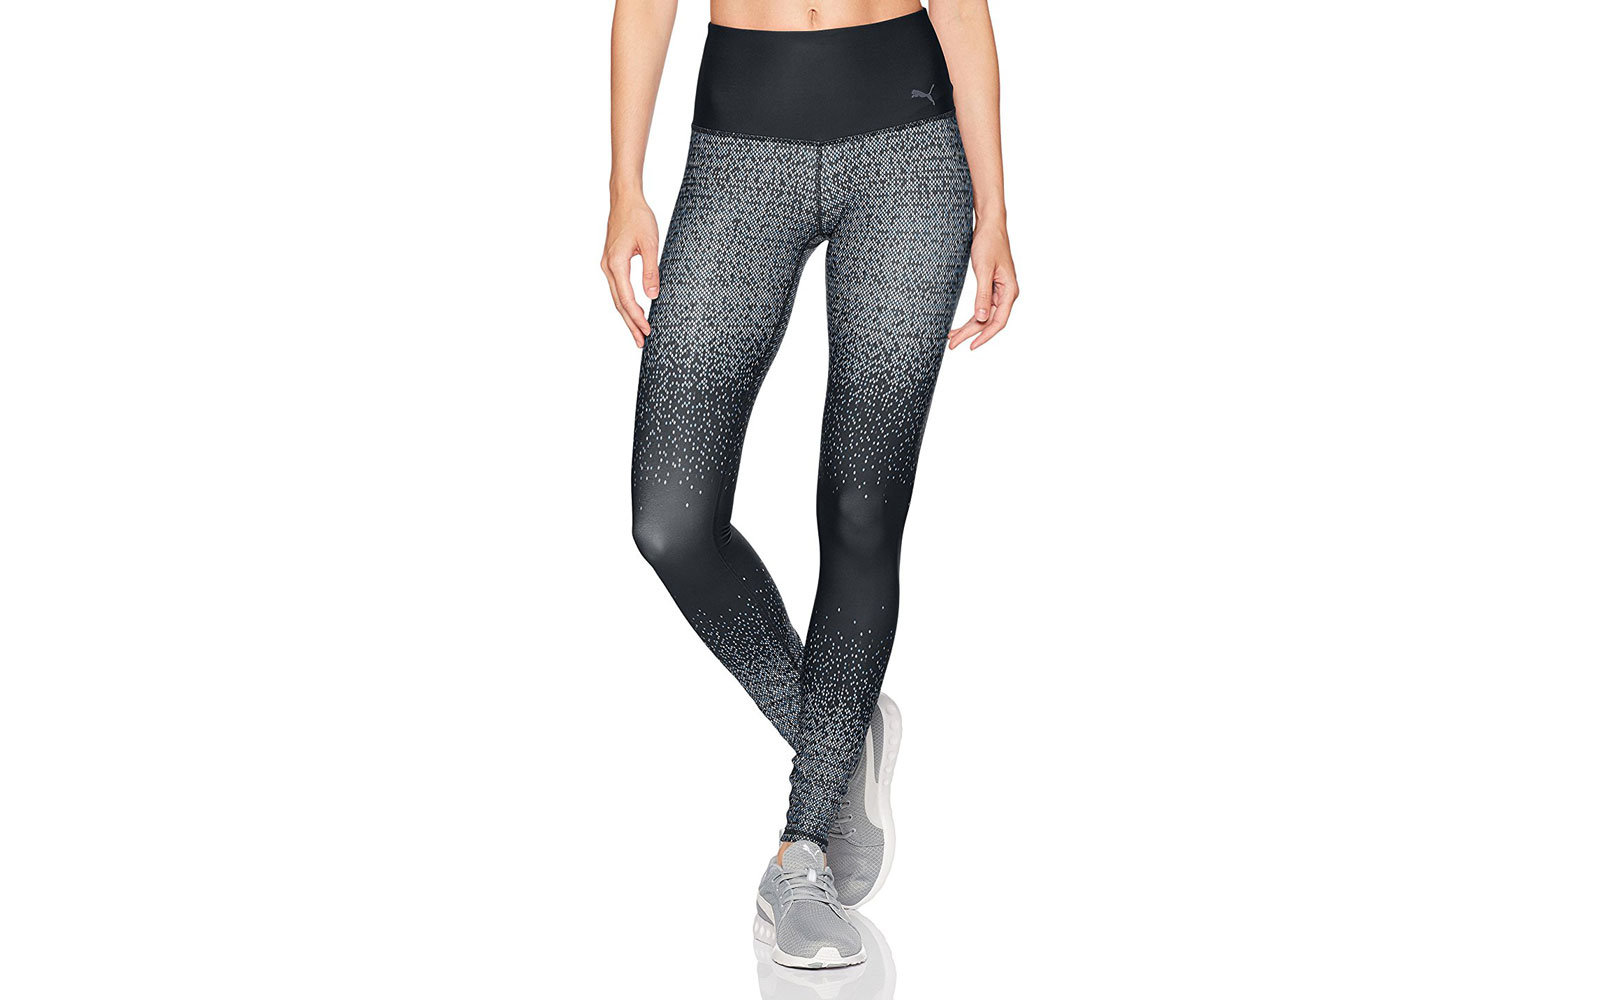 e92353fd081e5 The Best Women's Compression Leggings for Travel | Travel + Leisure